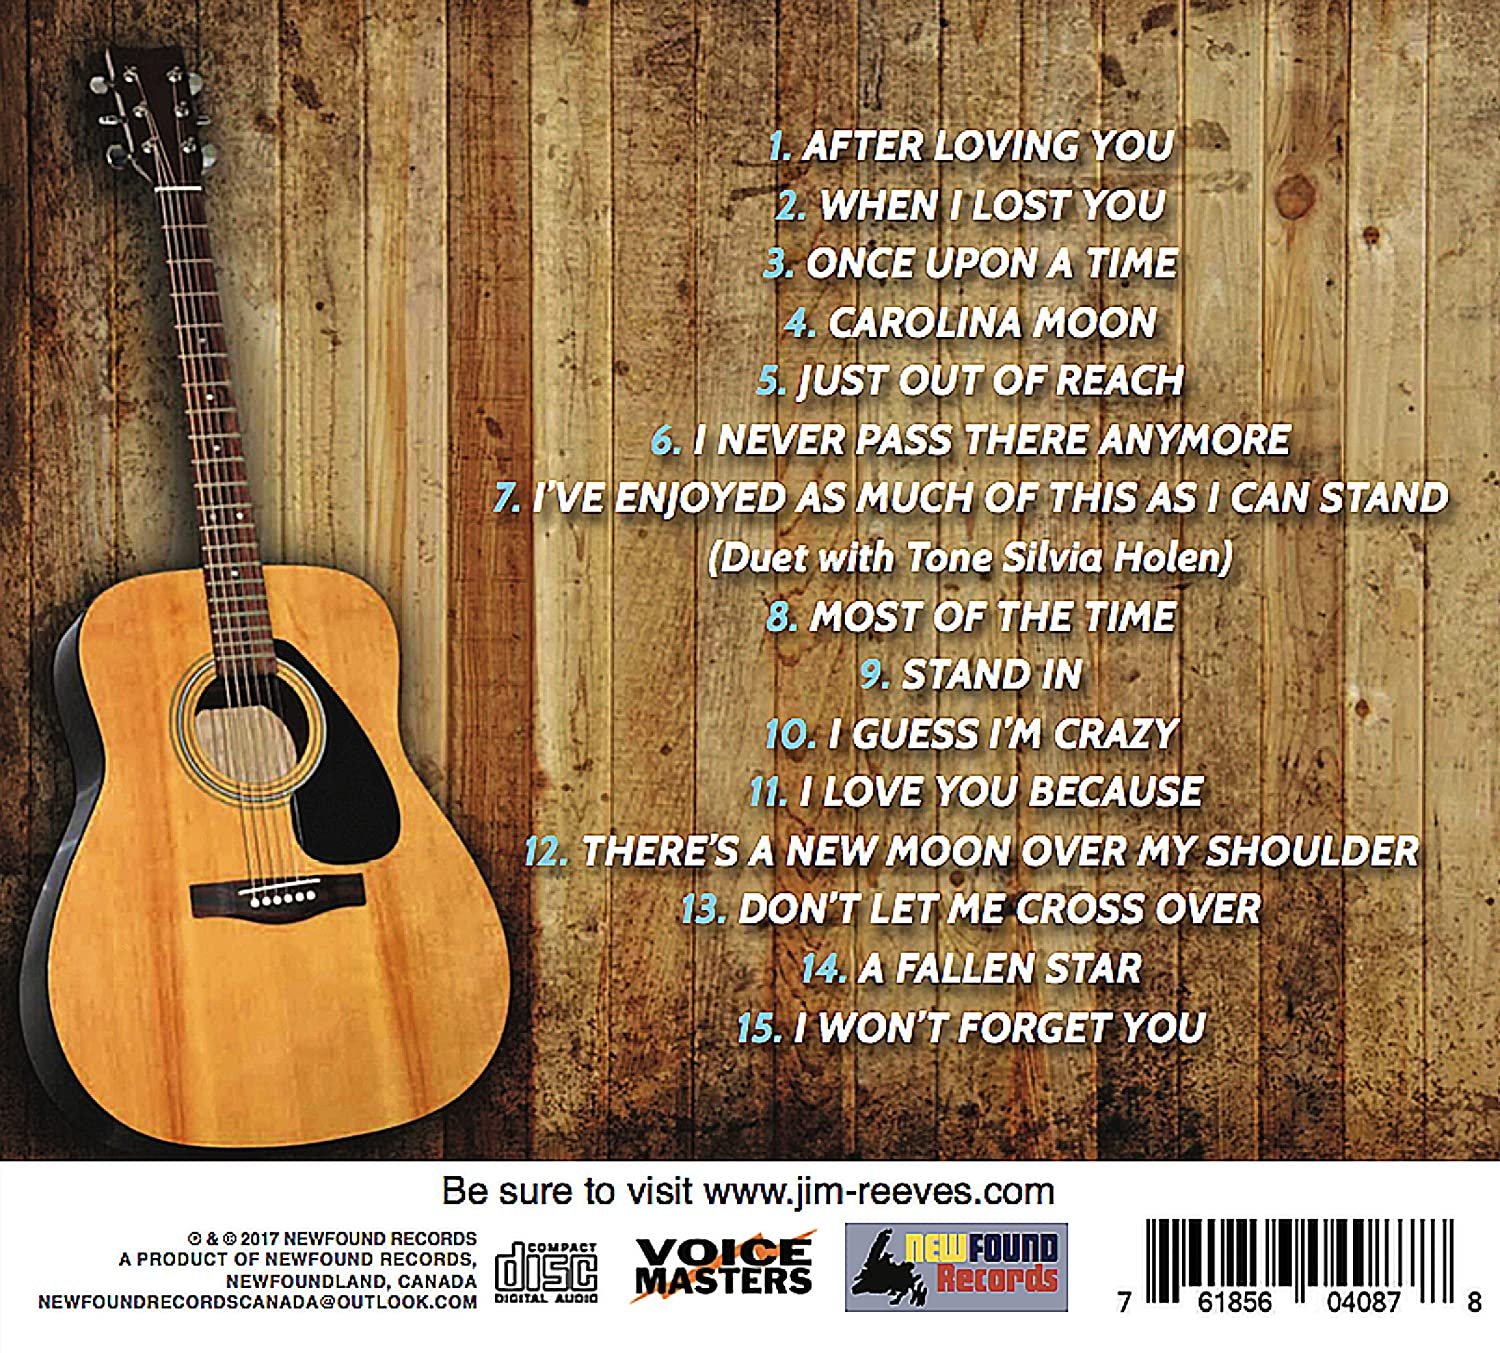 Jim Reeves, 15 New Overdubs! - Jim Reeves A New Way - Amazon.com Music